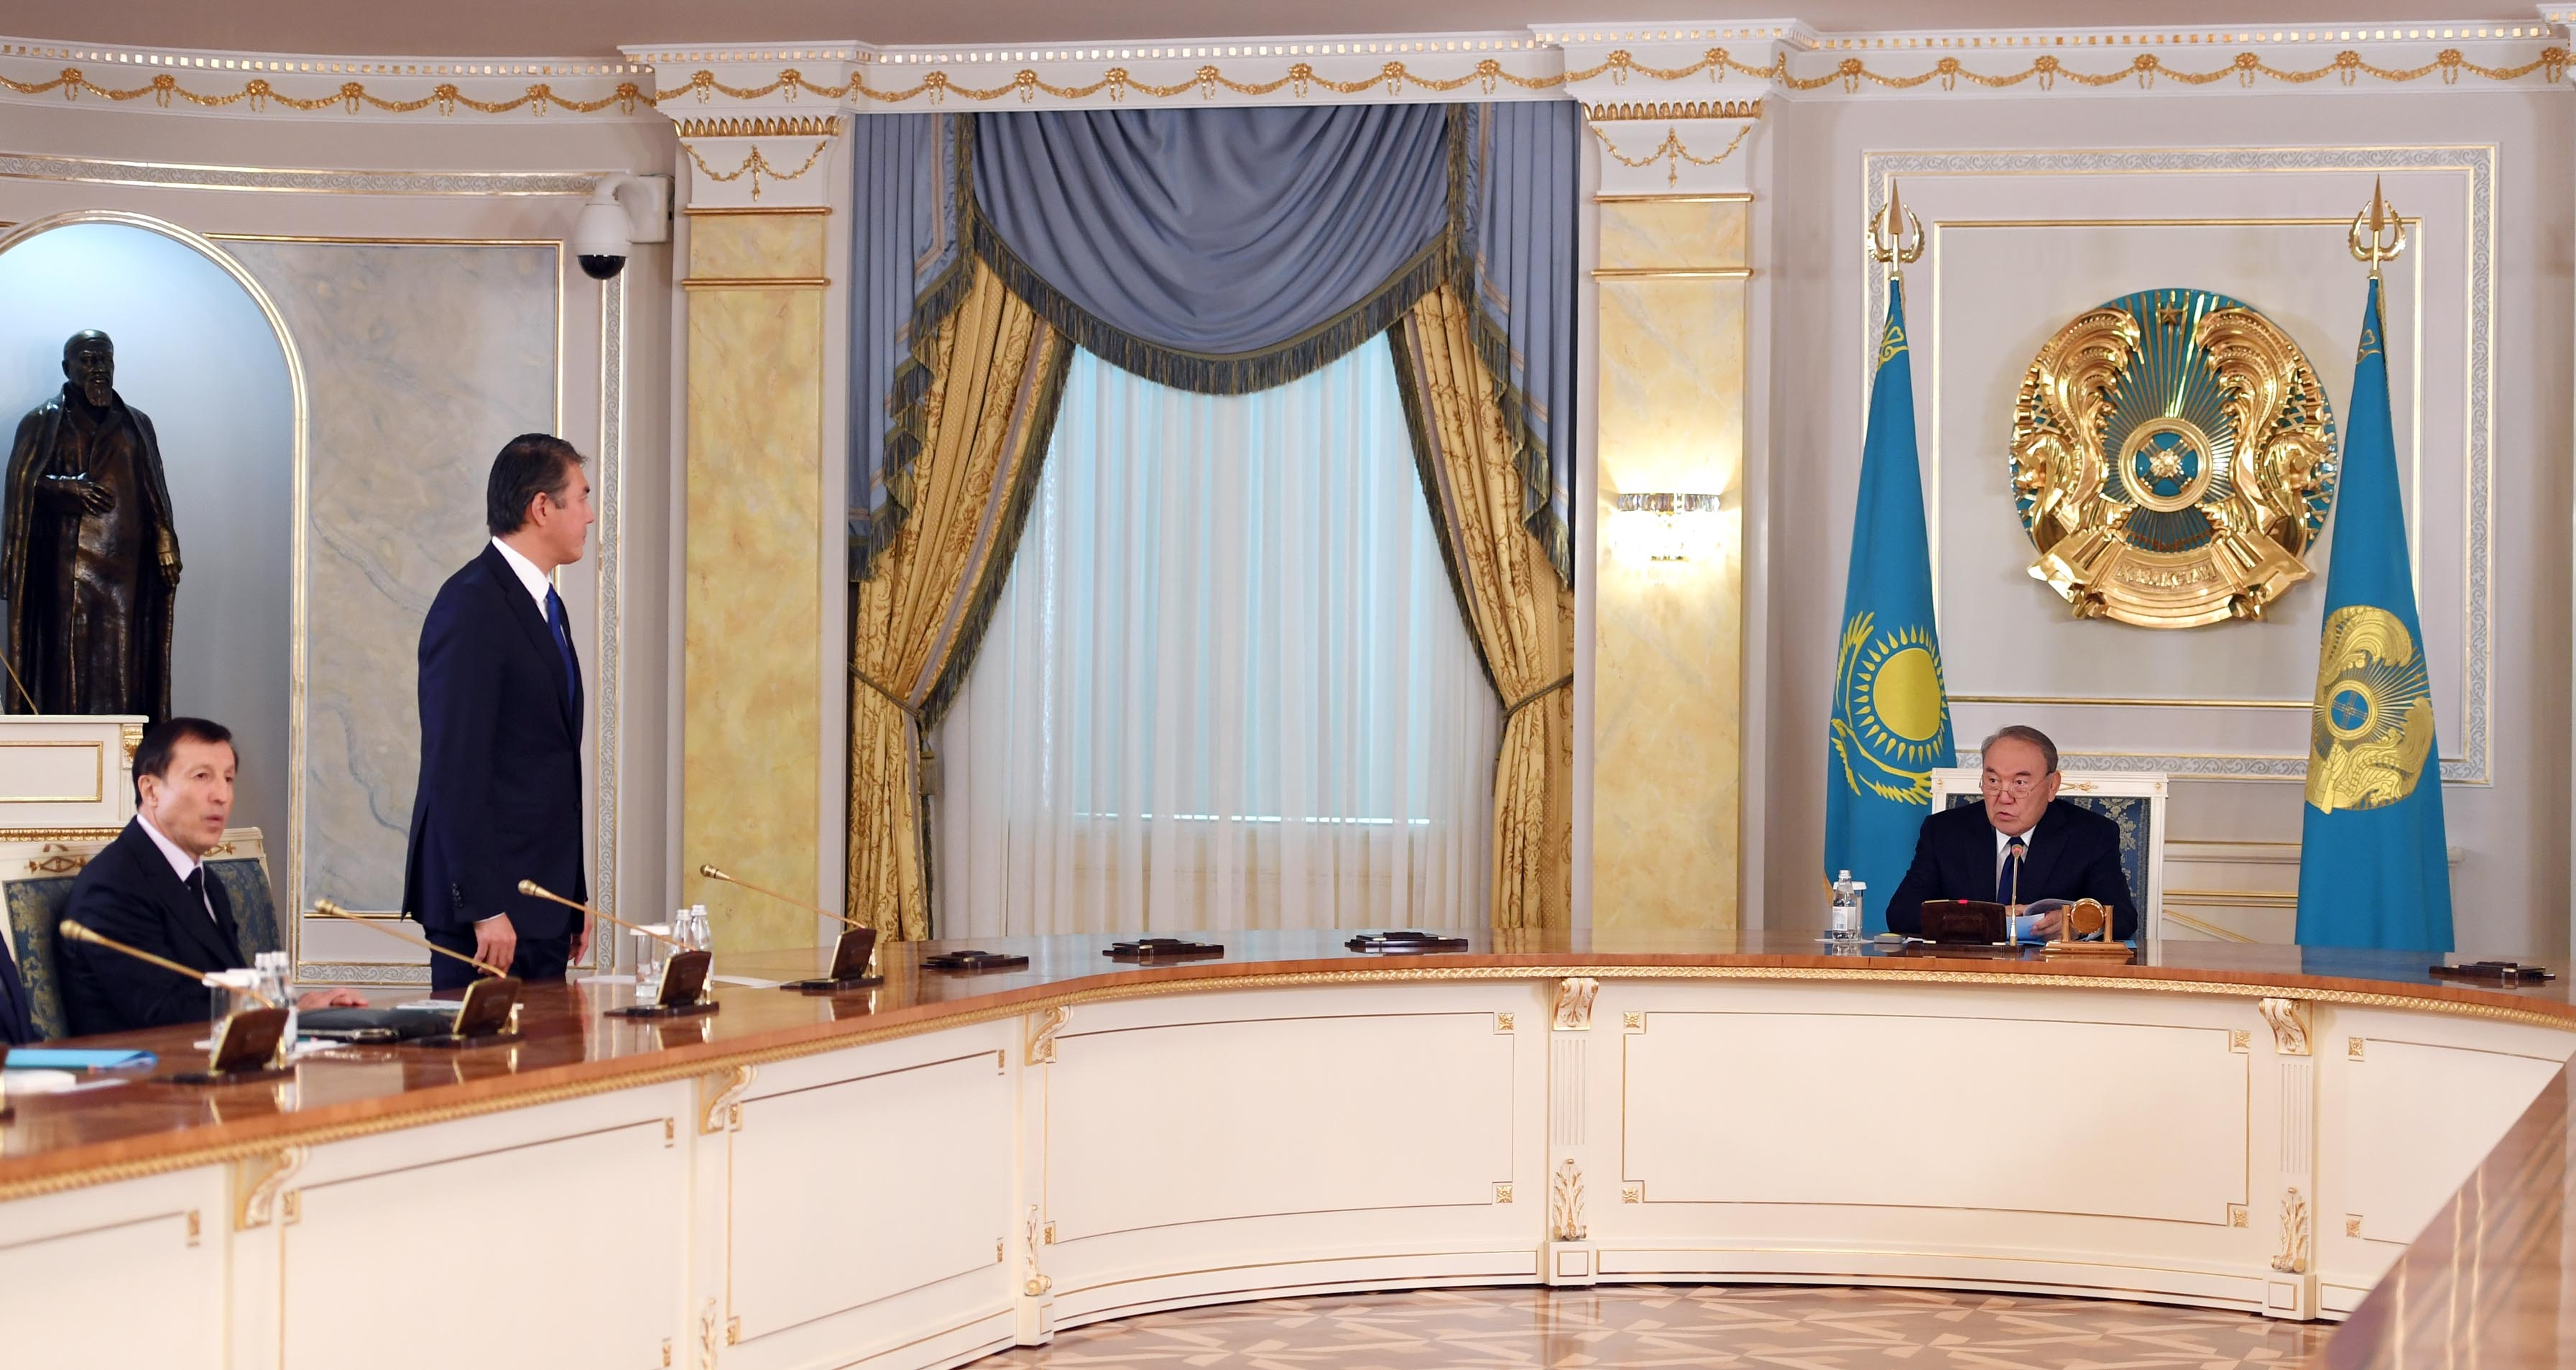 President Nursultan Nazarbayev, right, addressing Aset Isekeshev on September 11. Adilbek Dzhaksybekov is seen here seated on the far left. (Photo: Akorda presidential administration website)